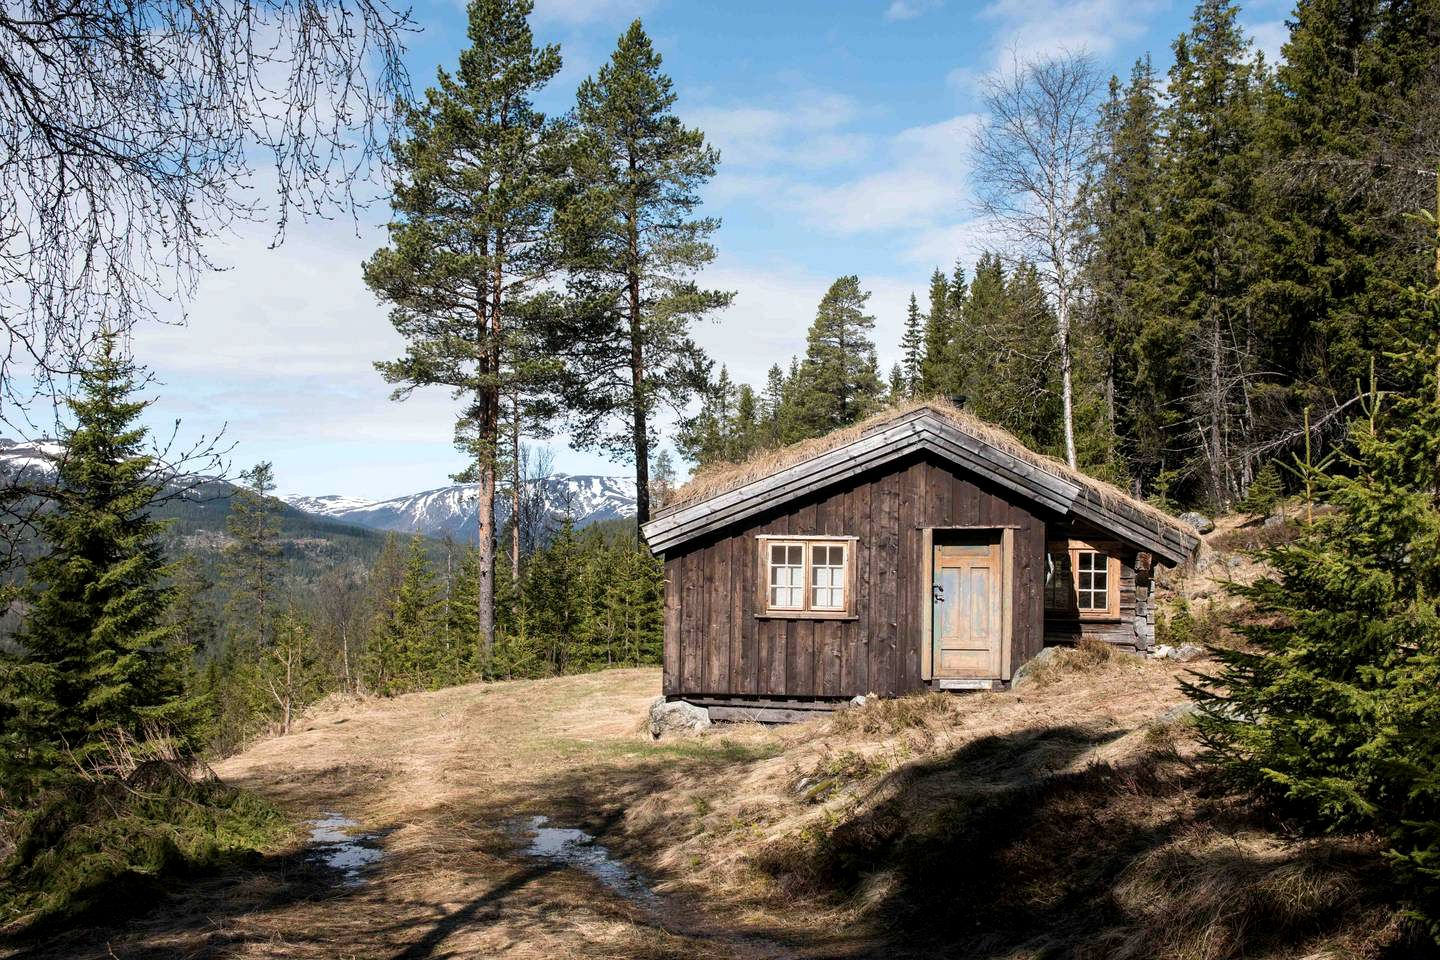 Secluded Cabin Rental in Tessungdalen Forest, Norway